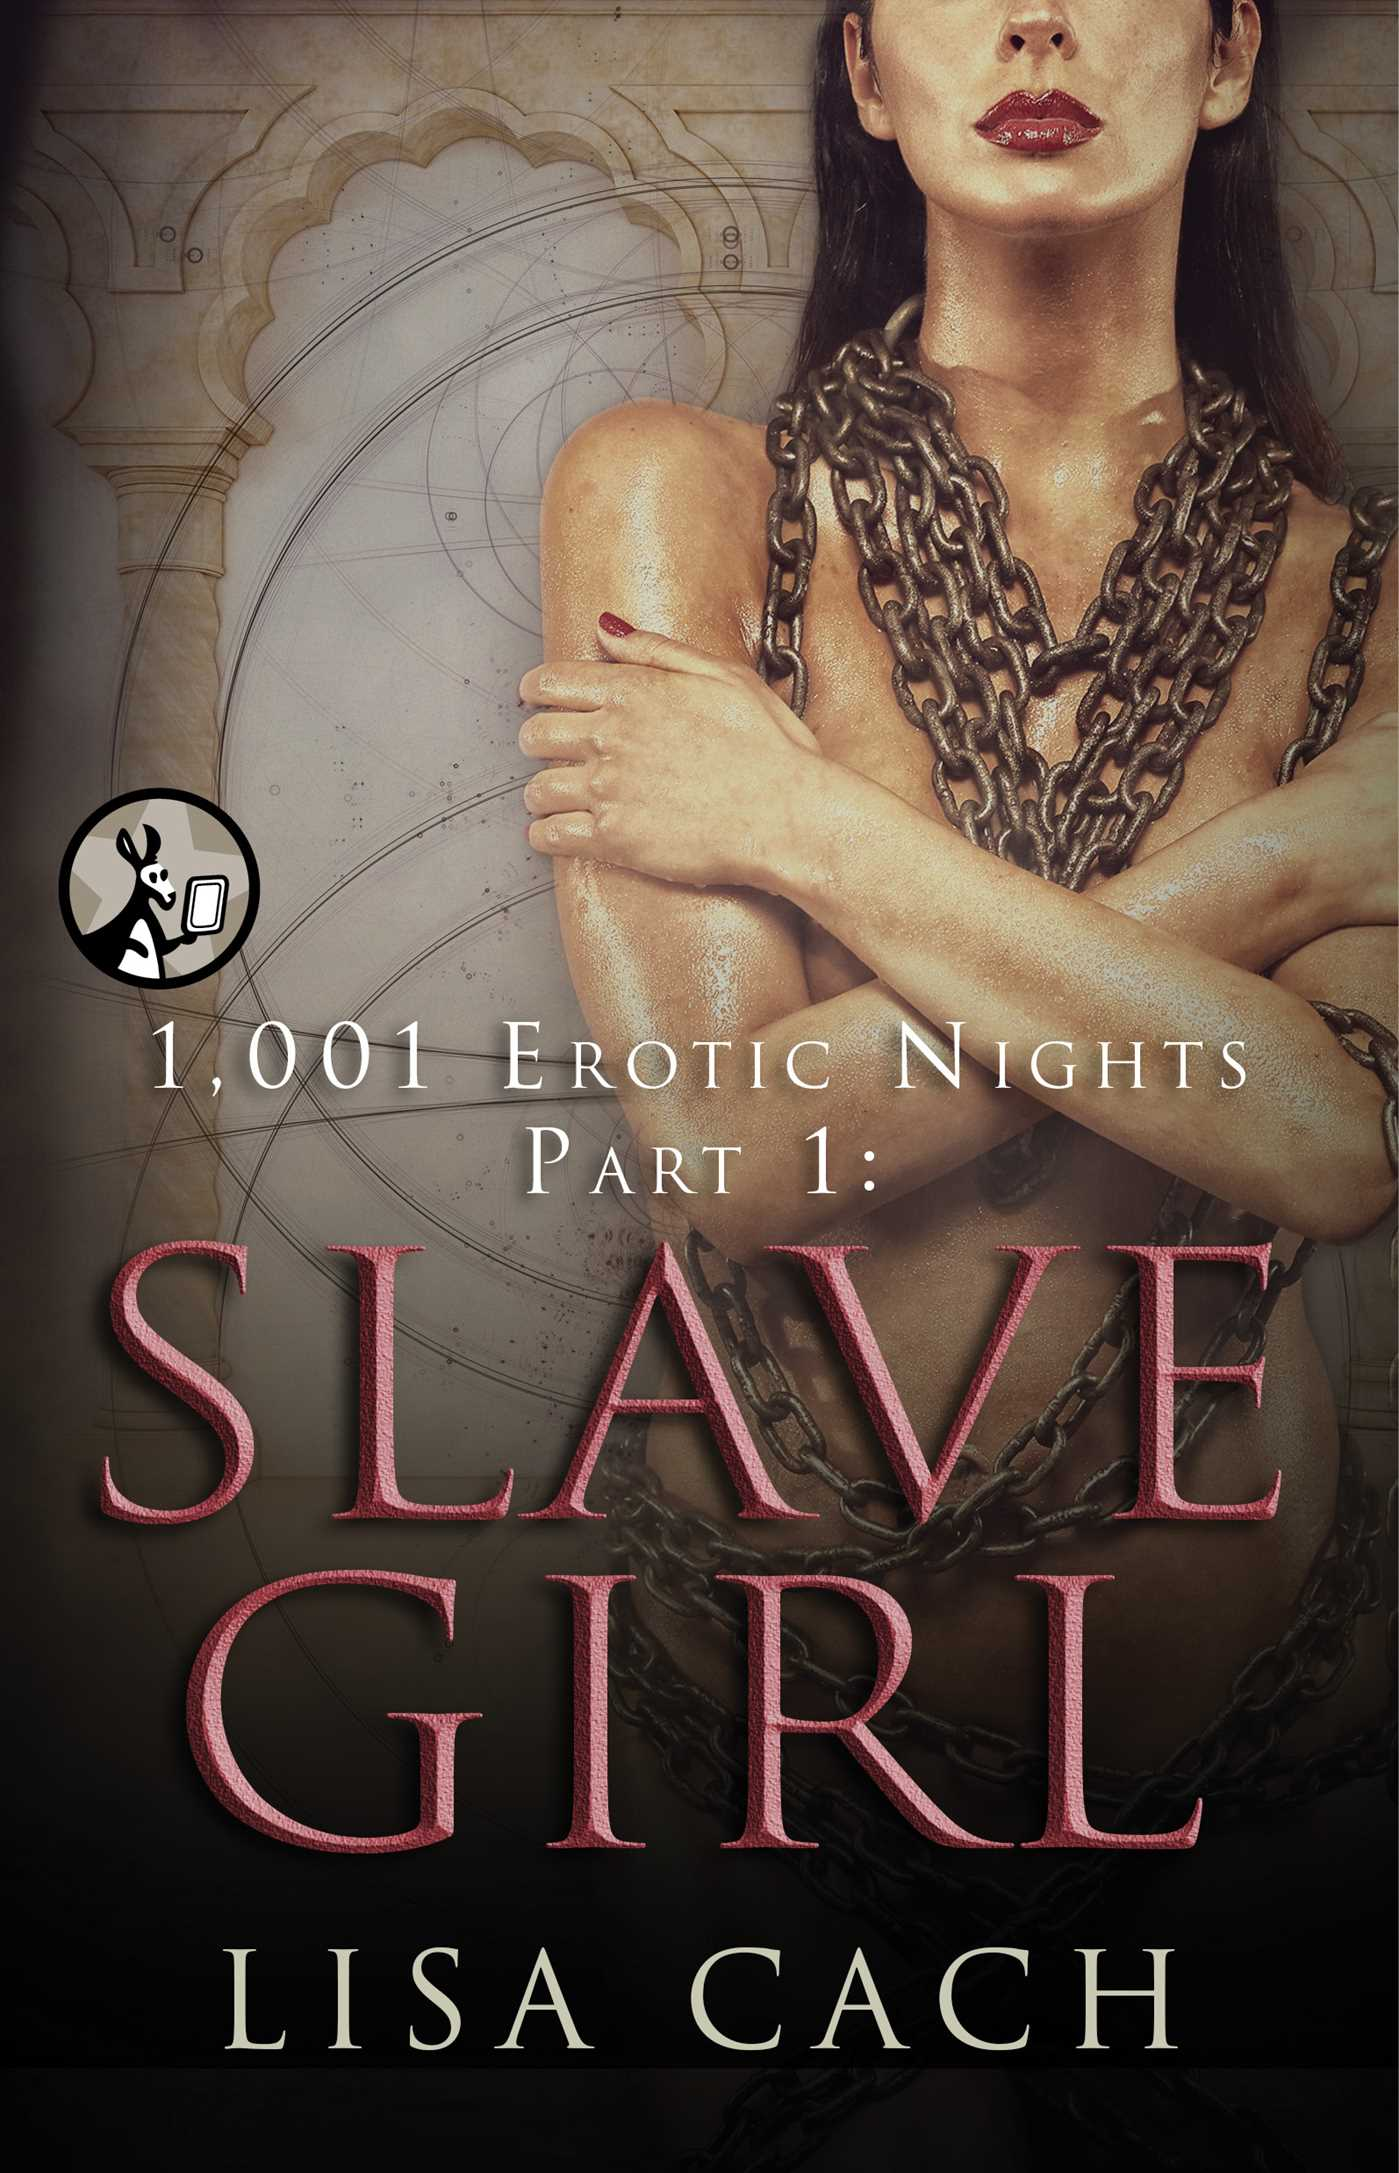 Slave Girl Ebook By Lisa Cach  Official Publisher Page -7821